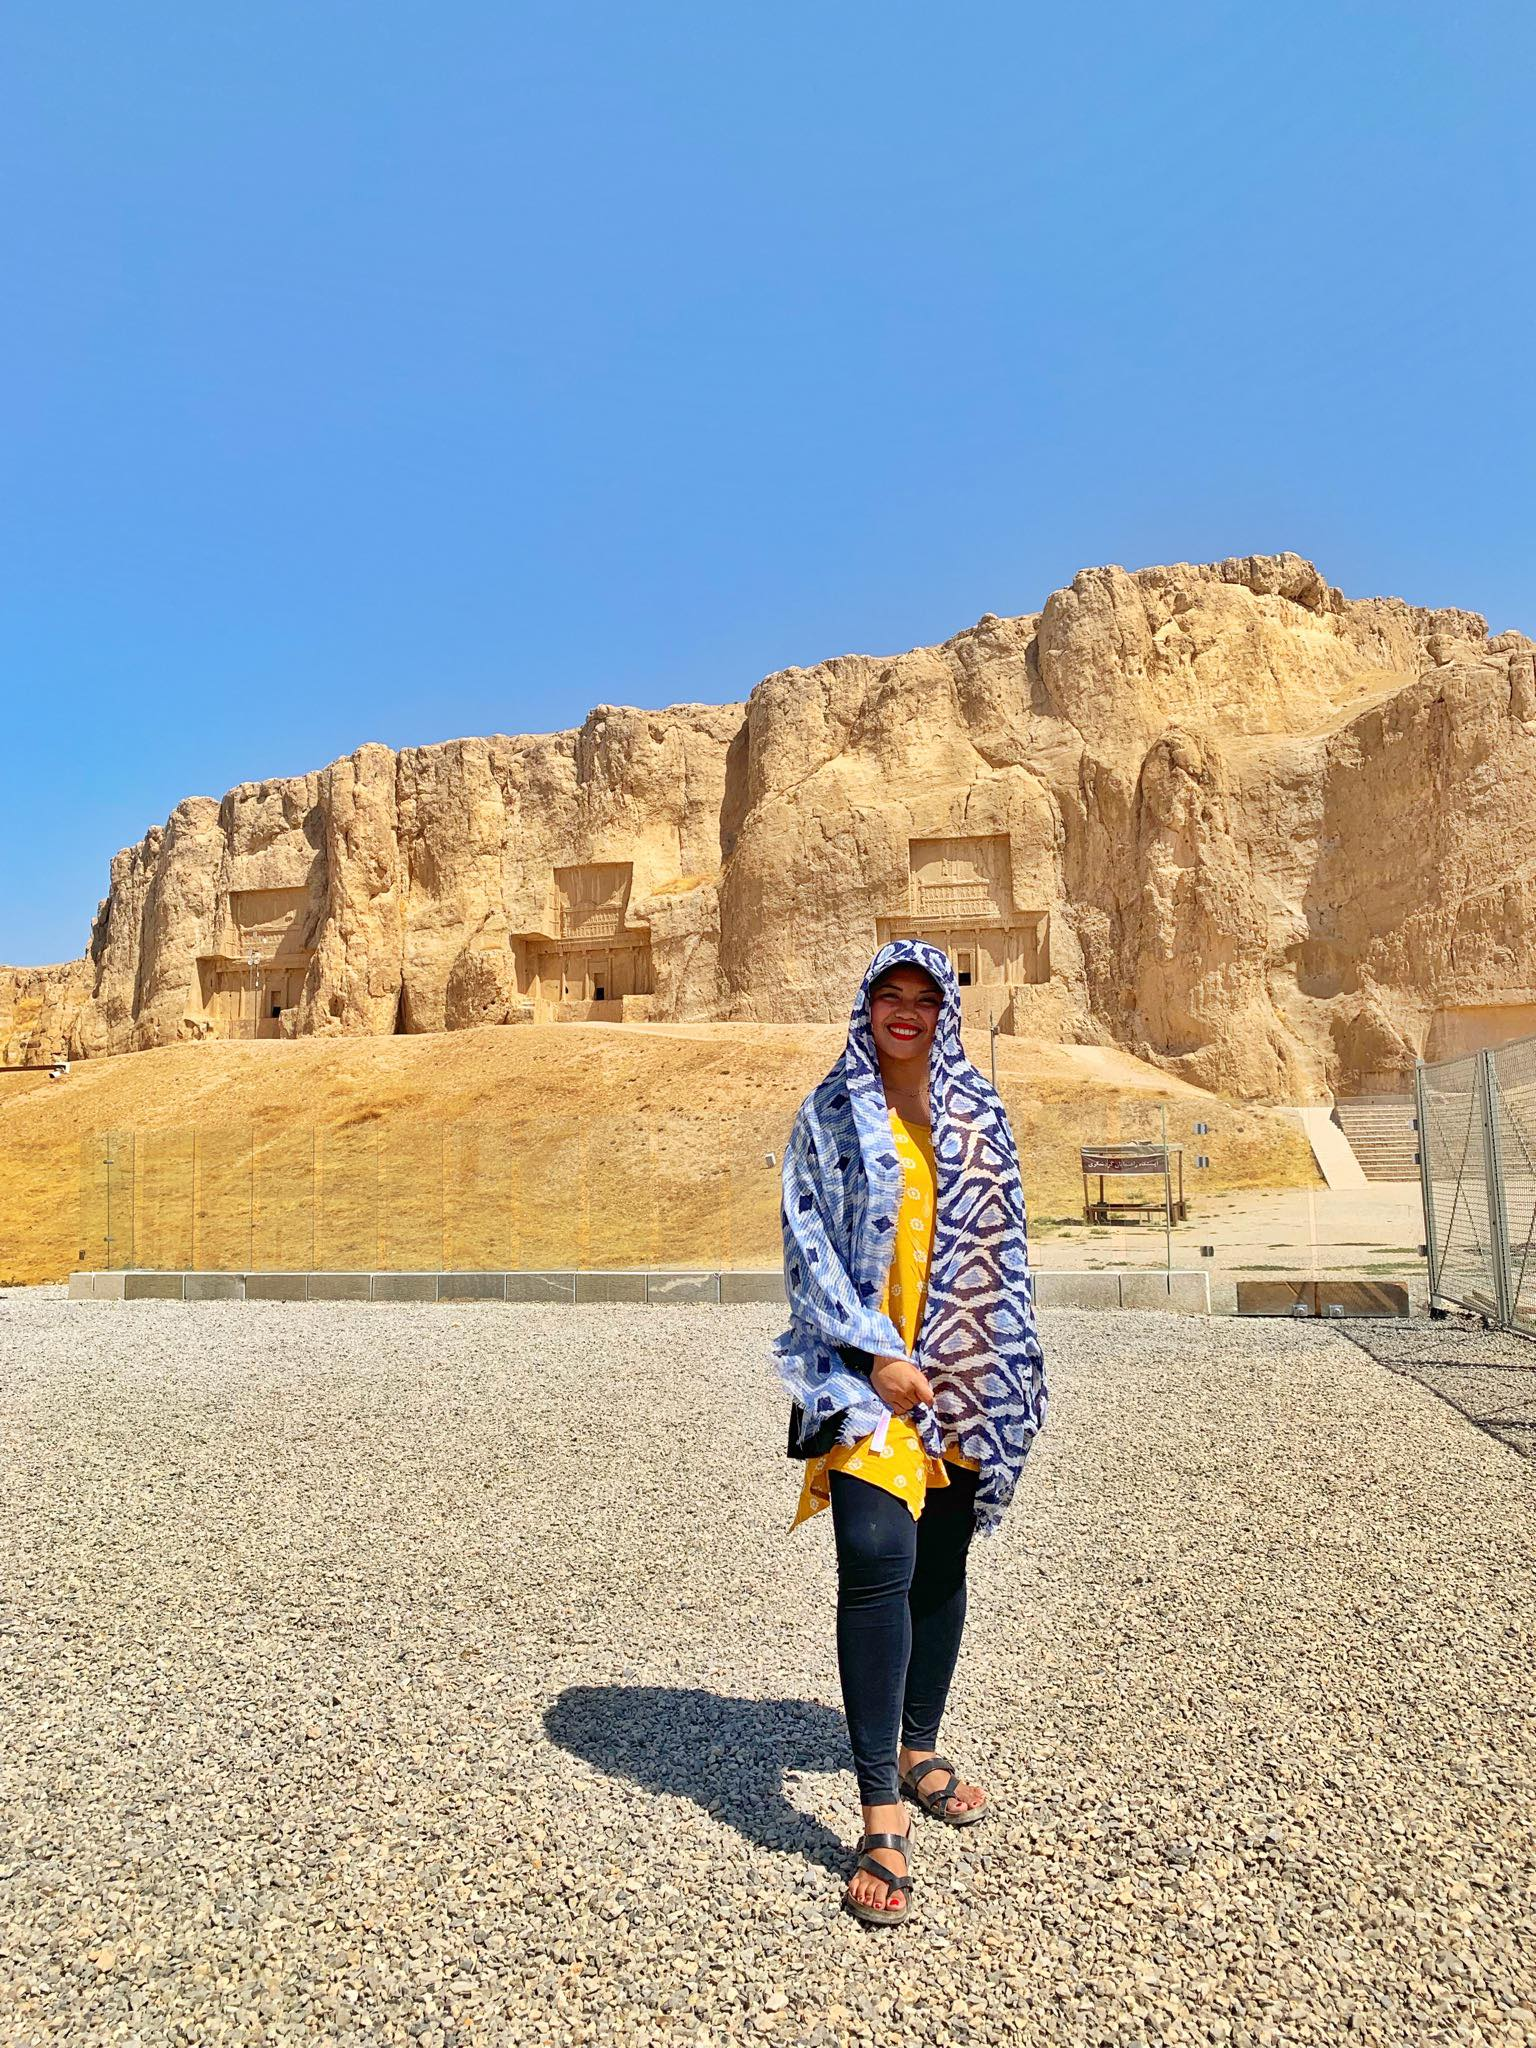 Kach Solo Travels in 2019 UNESCO heritages sites of Persepolis and Pasagardae1.jpg